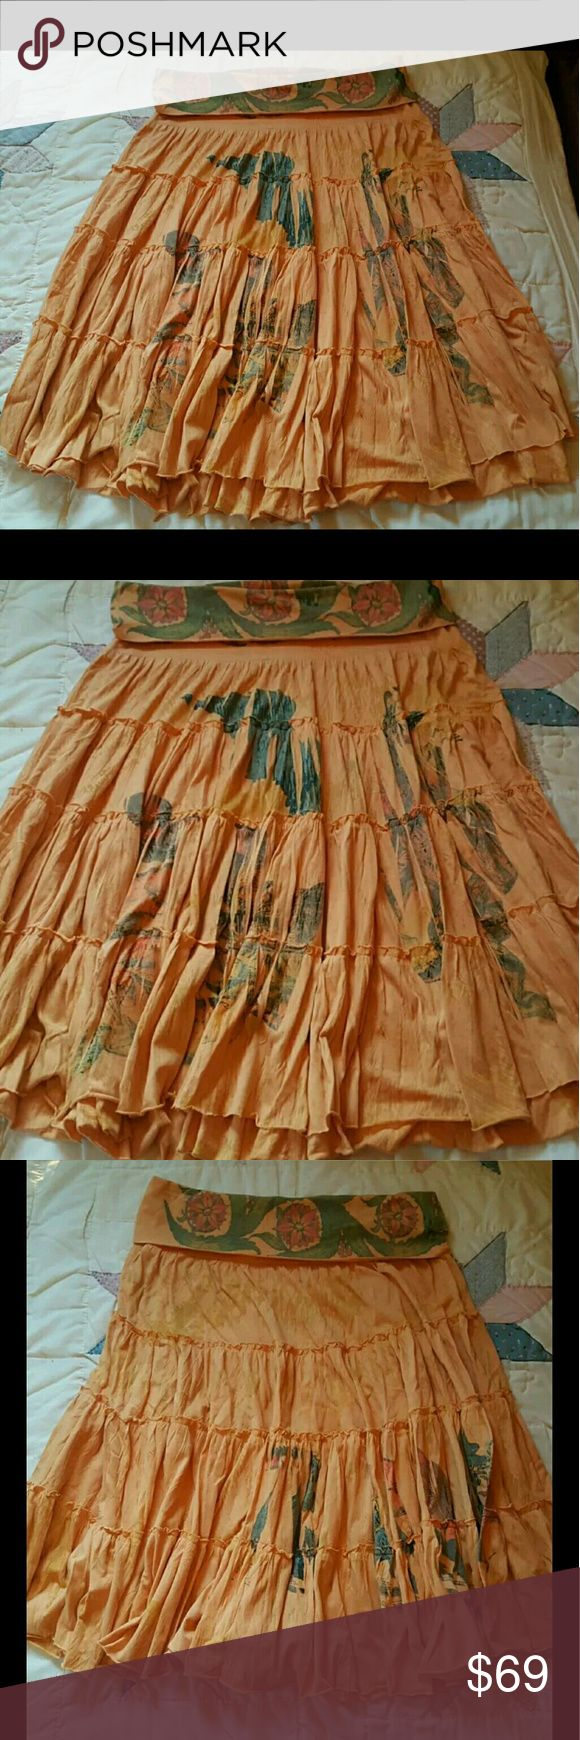 """Butterfly Dropout Tiered hippie Skirt Festival ??? Soo sahweet! Butterfly Dropout now defunct line of ahhmayzing clothing. Made in usa yayyy!! Sz large juniors .prob med women's  However STRETCHY fold over waistand and diff print. Orange w/yellowish streaks. Hard 2 describe color is subjective  *pic #4 taken WITHOUT FLASH rest w/flash* #Festival #coachella    Sublimation print. Full skirt, drapey w/gr8 movement, prob midi. At 5'1-2""""ish if I wear on hips  almost to ankles.  meaurments added…"""